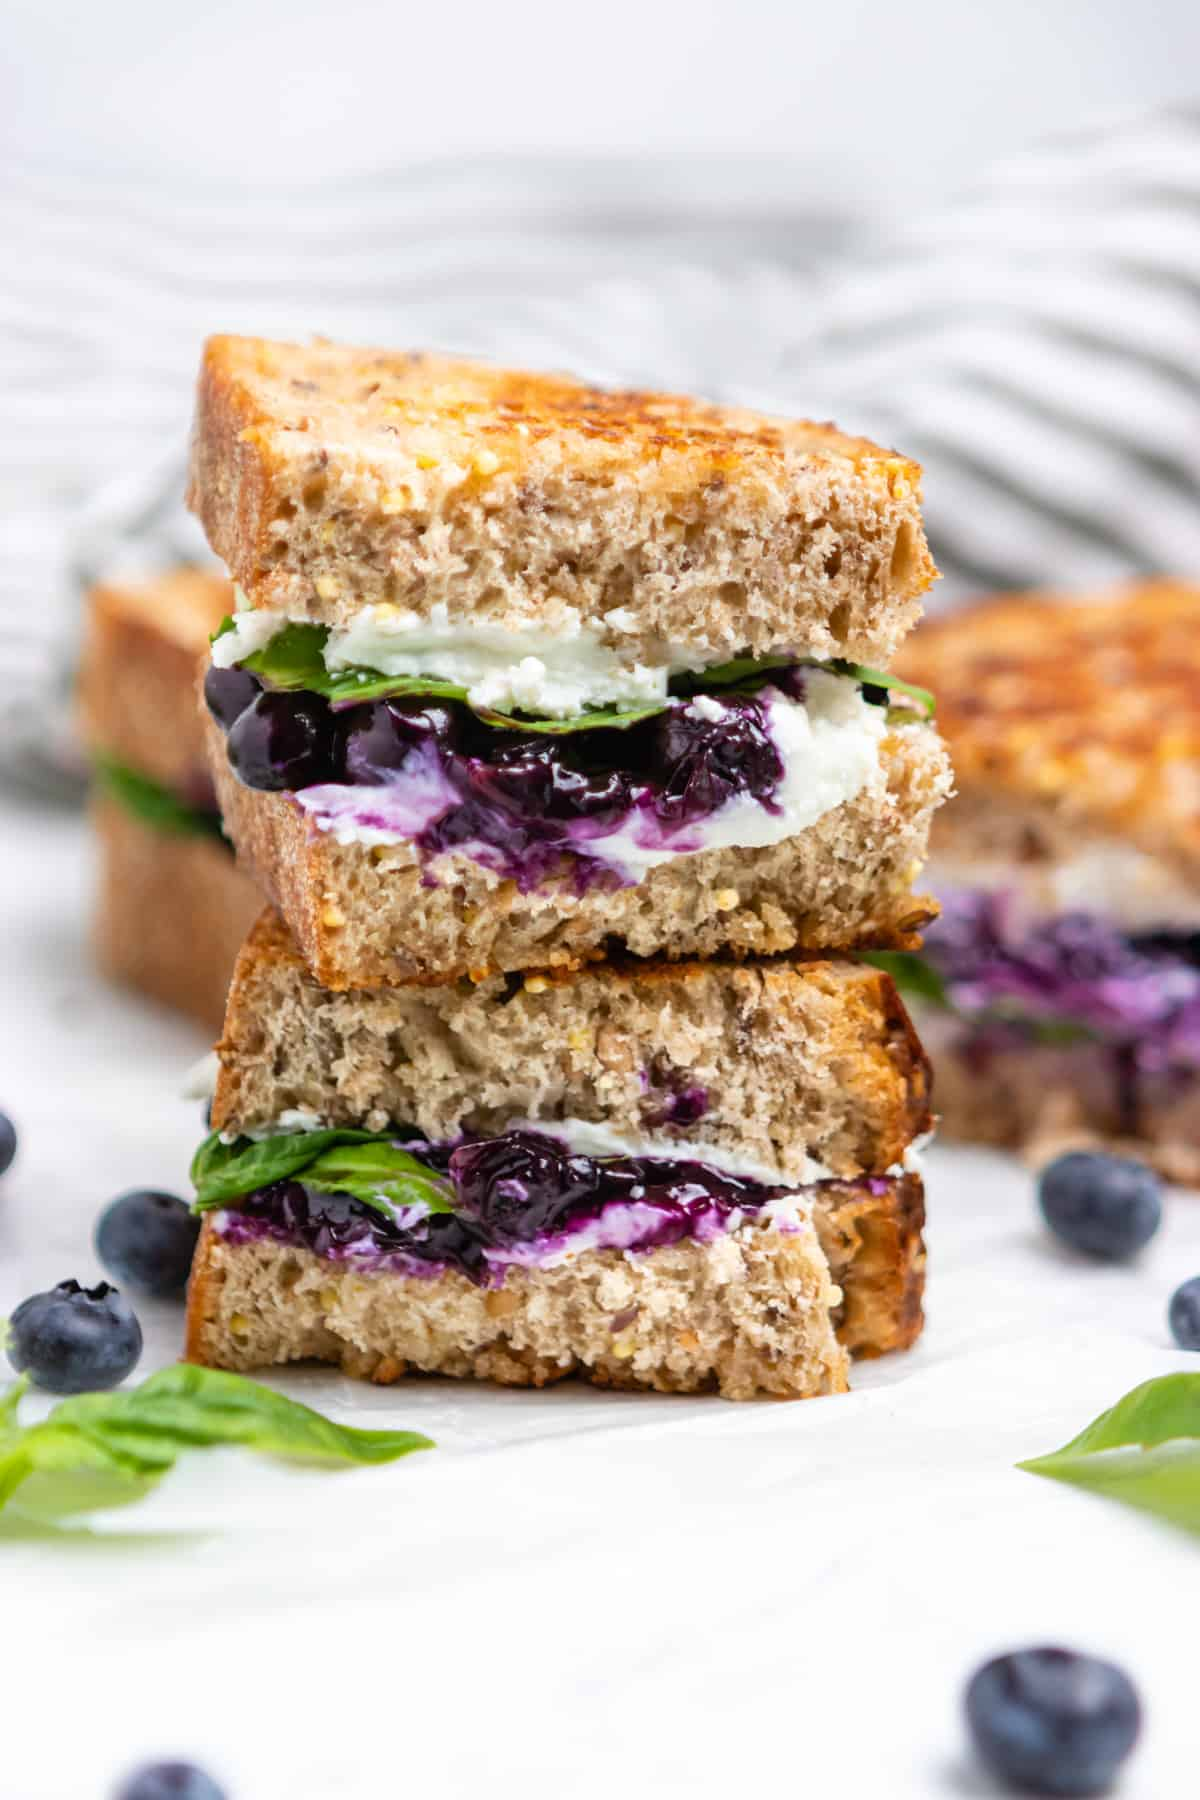 Grilled cheese with goat cheese, blueberries and basil stacked.